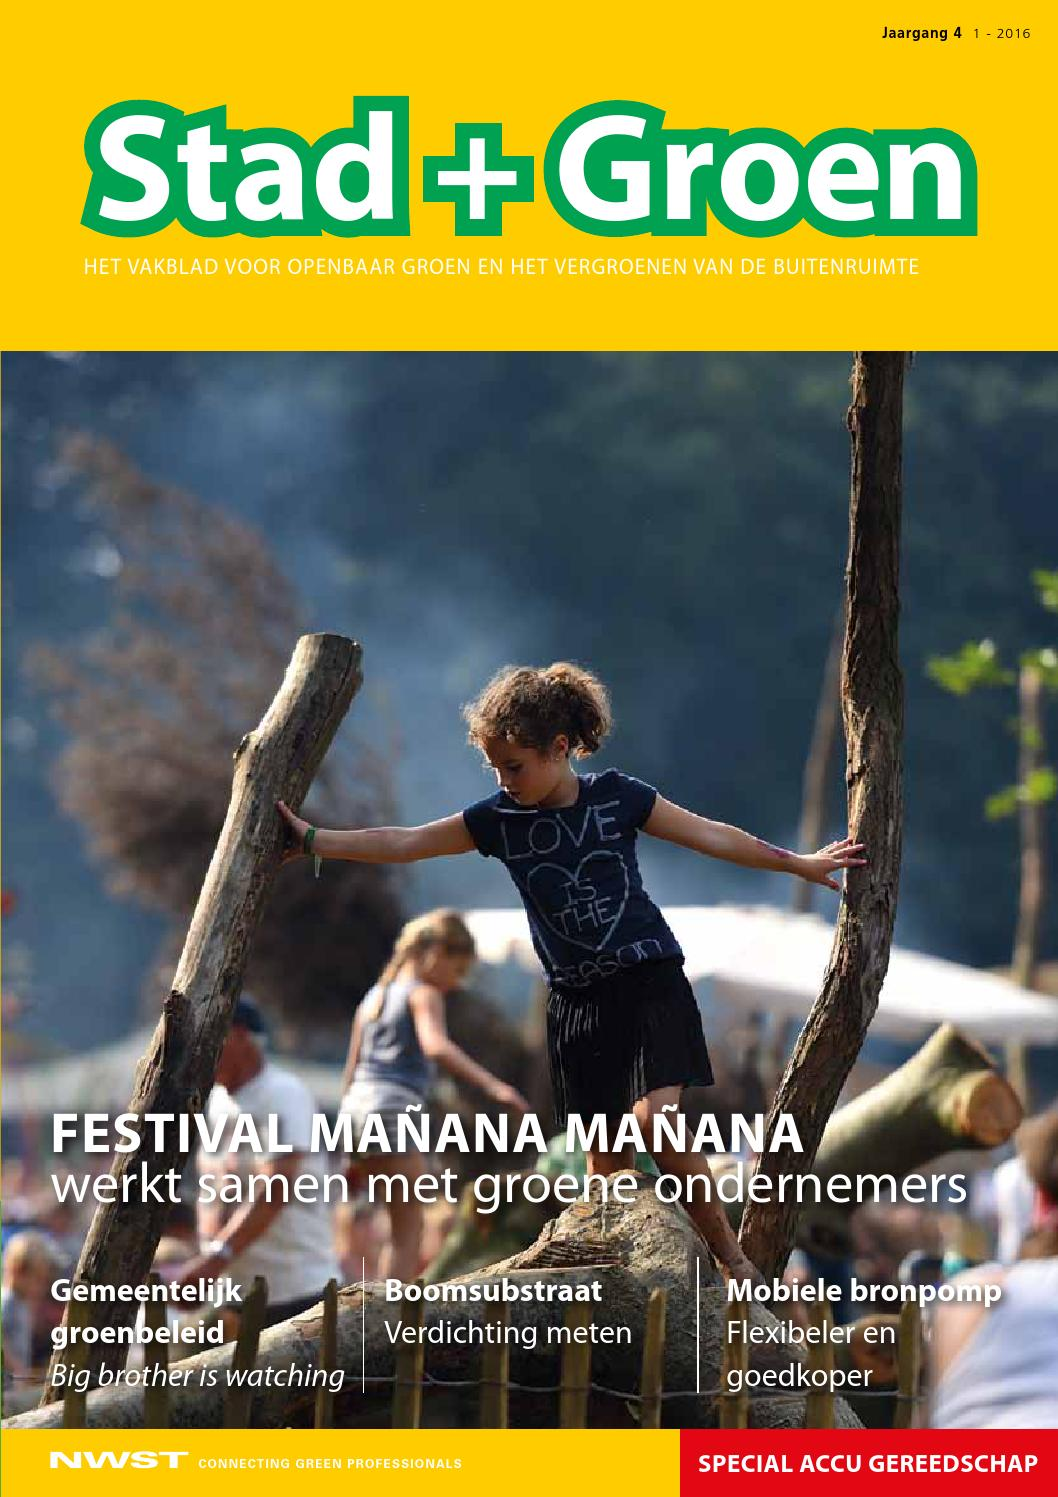 Stad en groen 5 2016 by nwst newstories   issuu